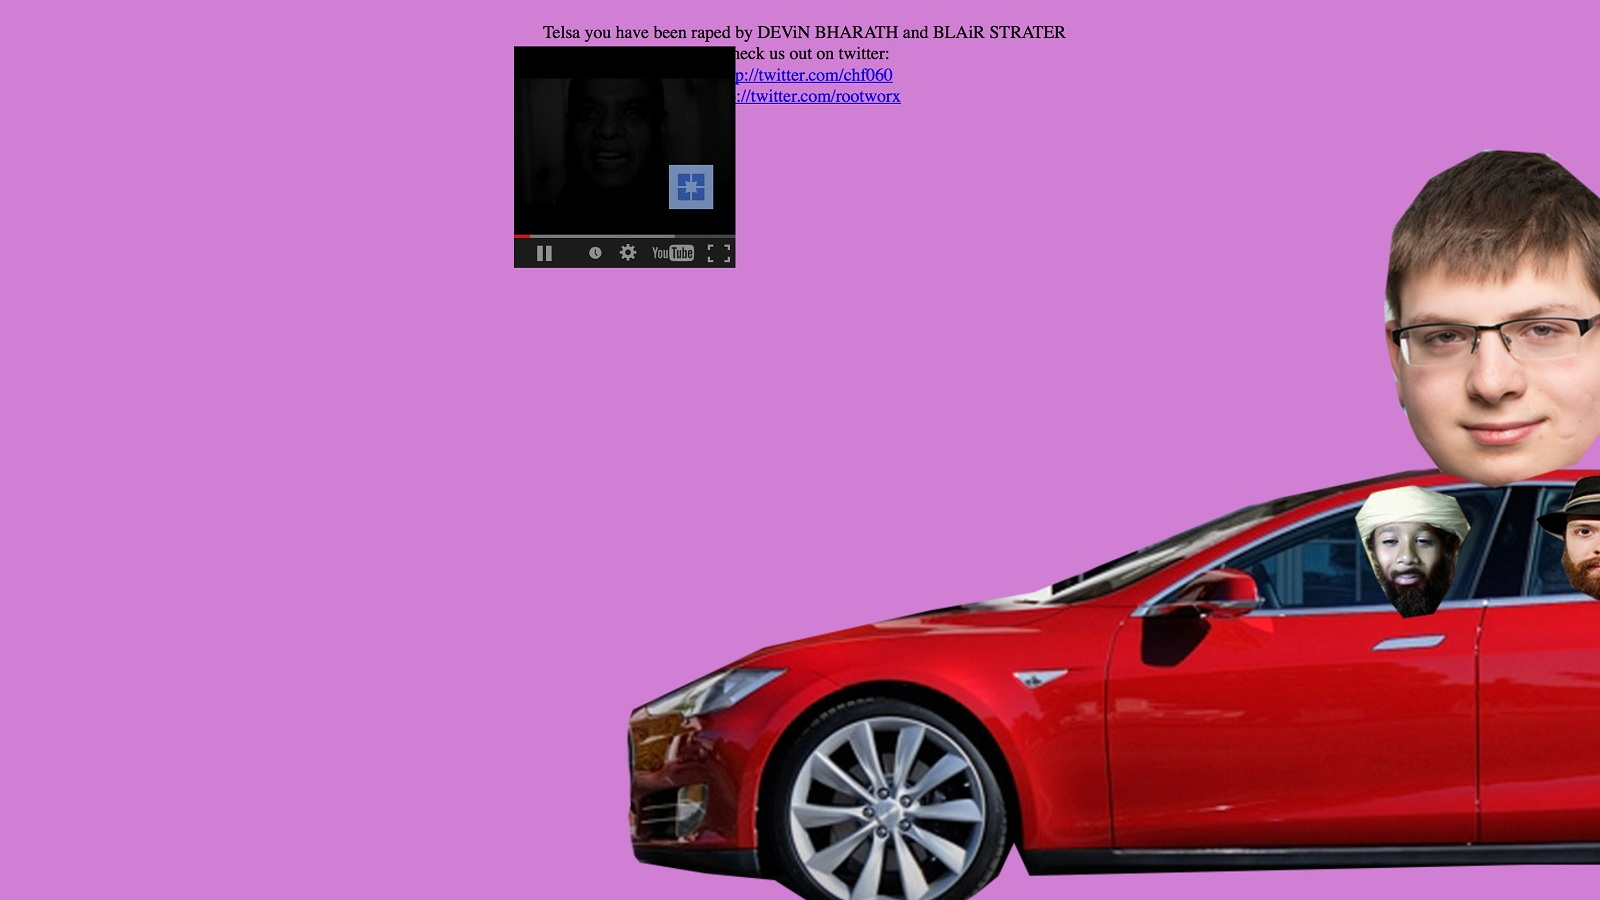 Tesla Motors website hacked, Apr 2015